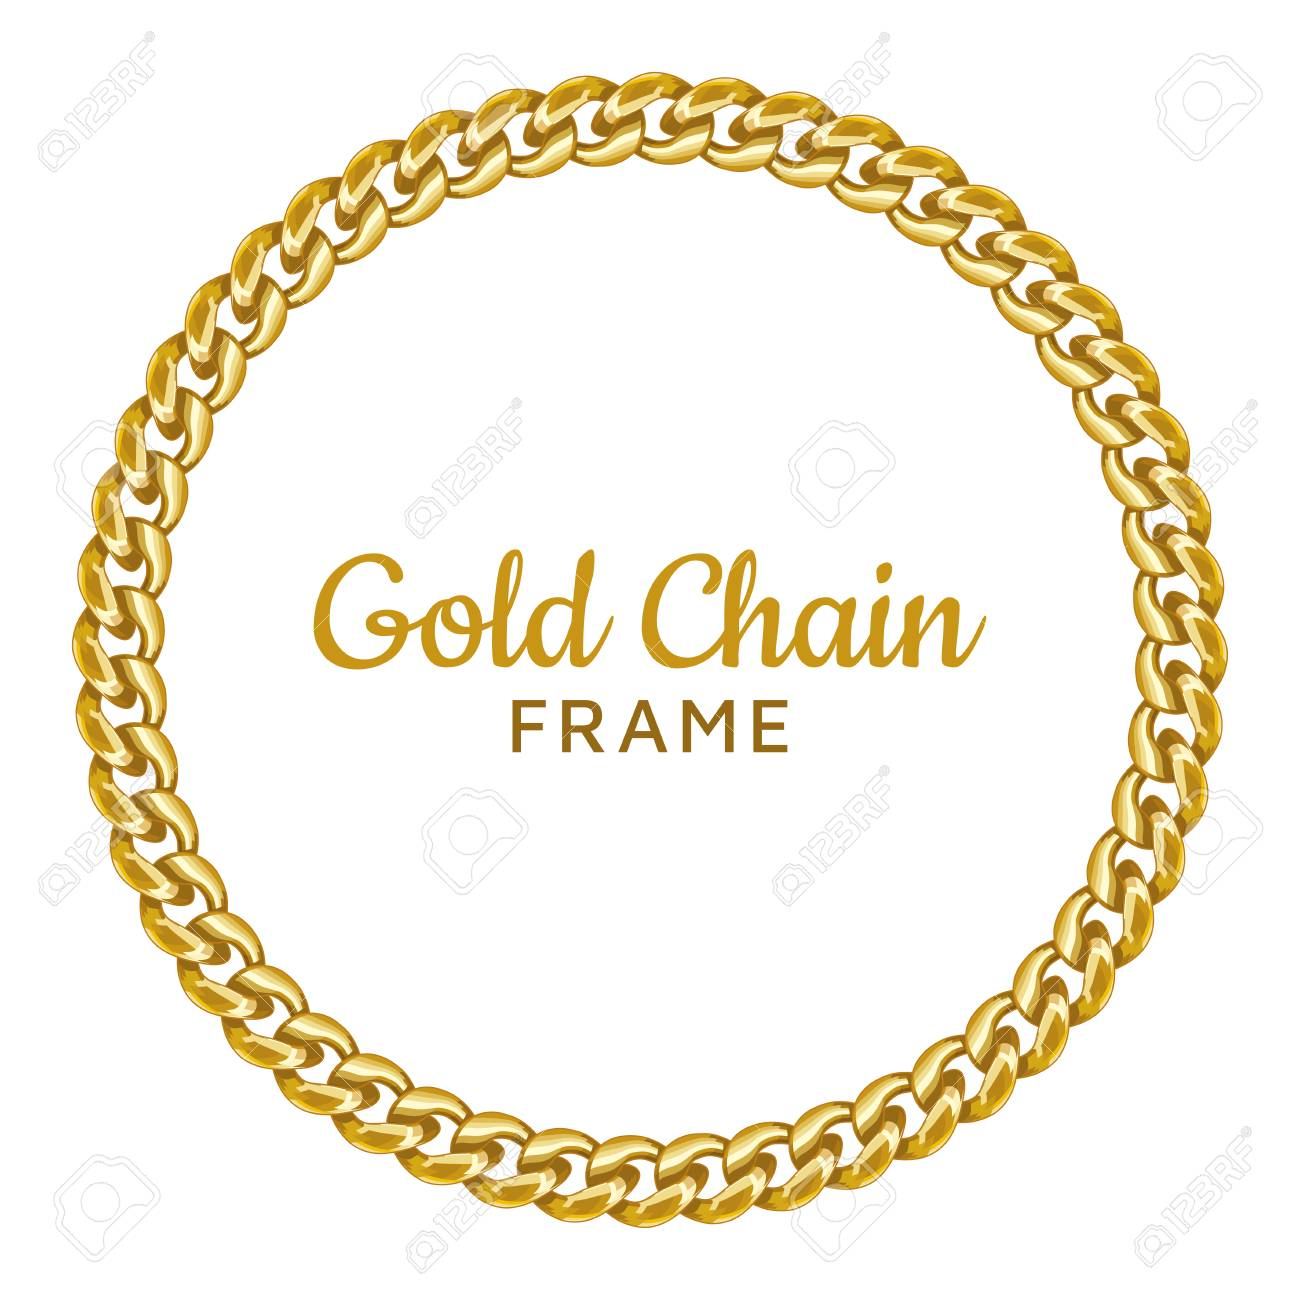 f4161734dbde Golden chain round border frame. Seamless wreath circle shape. Realistic  vector illustration isolated on